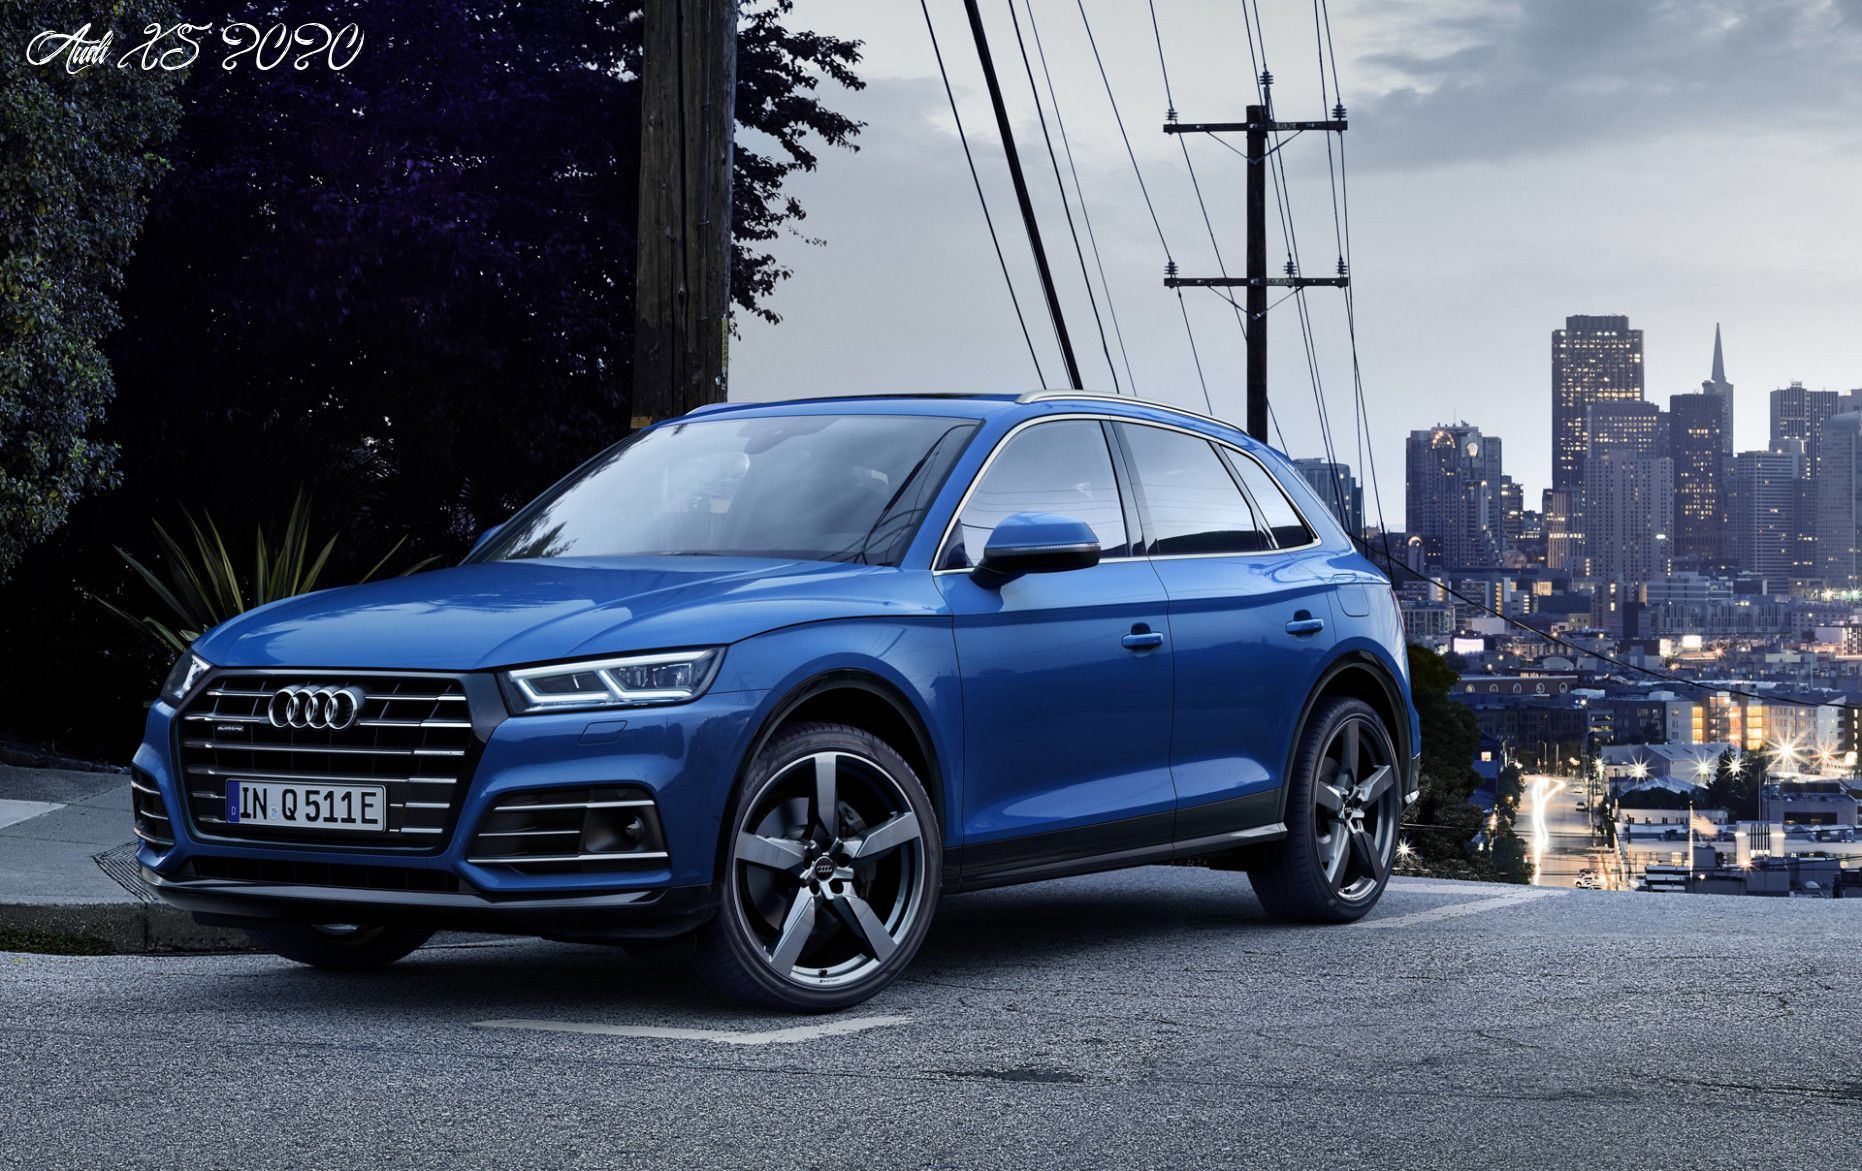 Audi X5 2020 Redesign And Review In 2020 Audi Crossover Audi Q5 Bmw